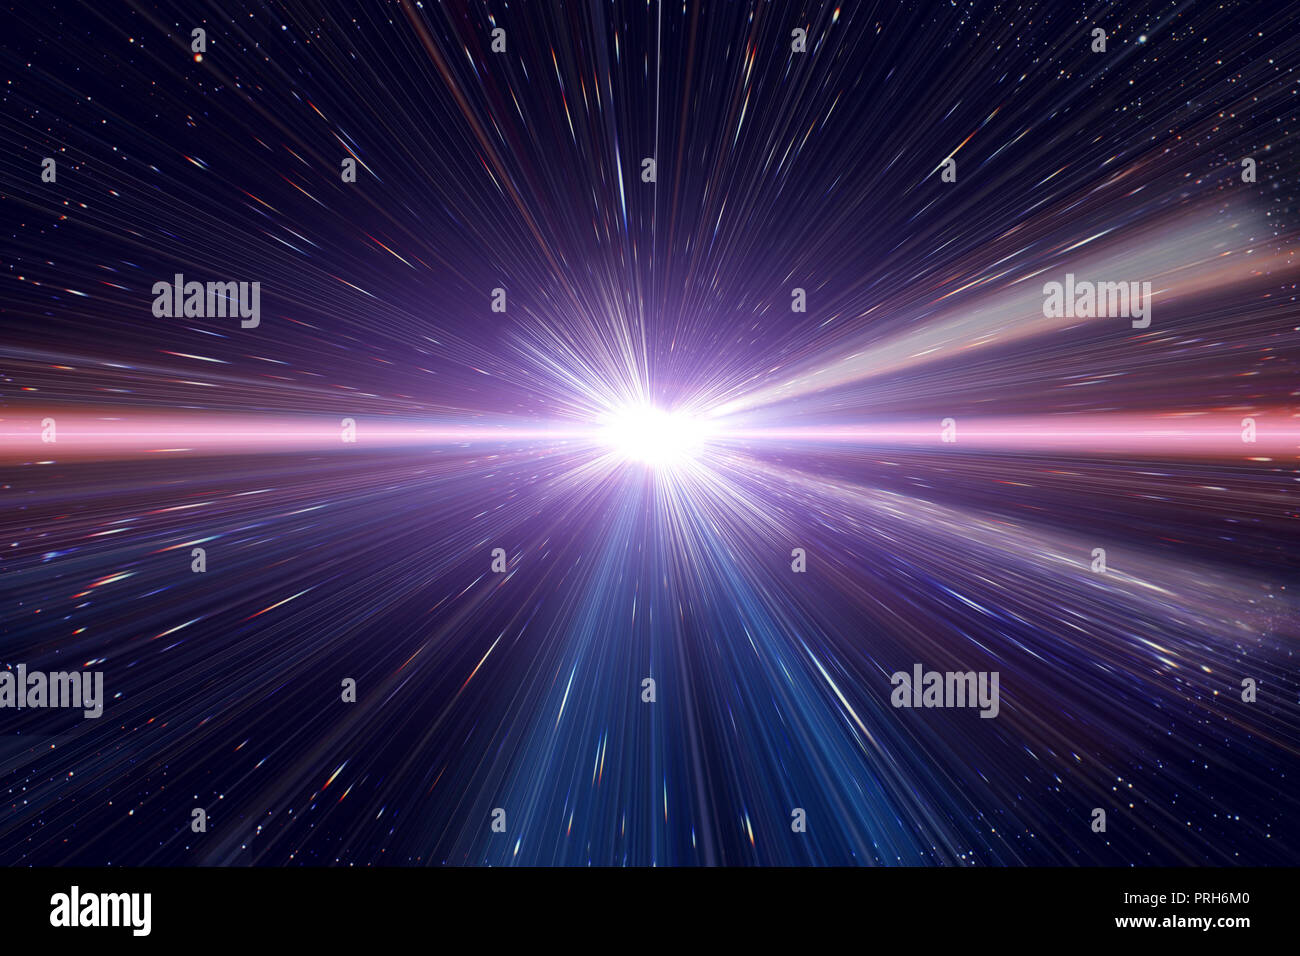 Light speed travel time warp traveling in outer space galaxy. - Stock Image